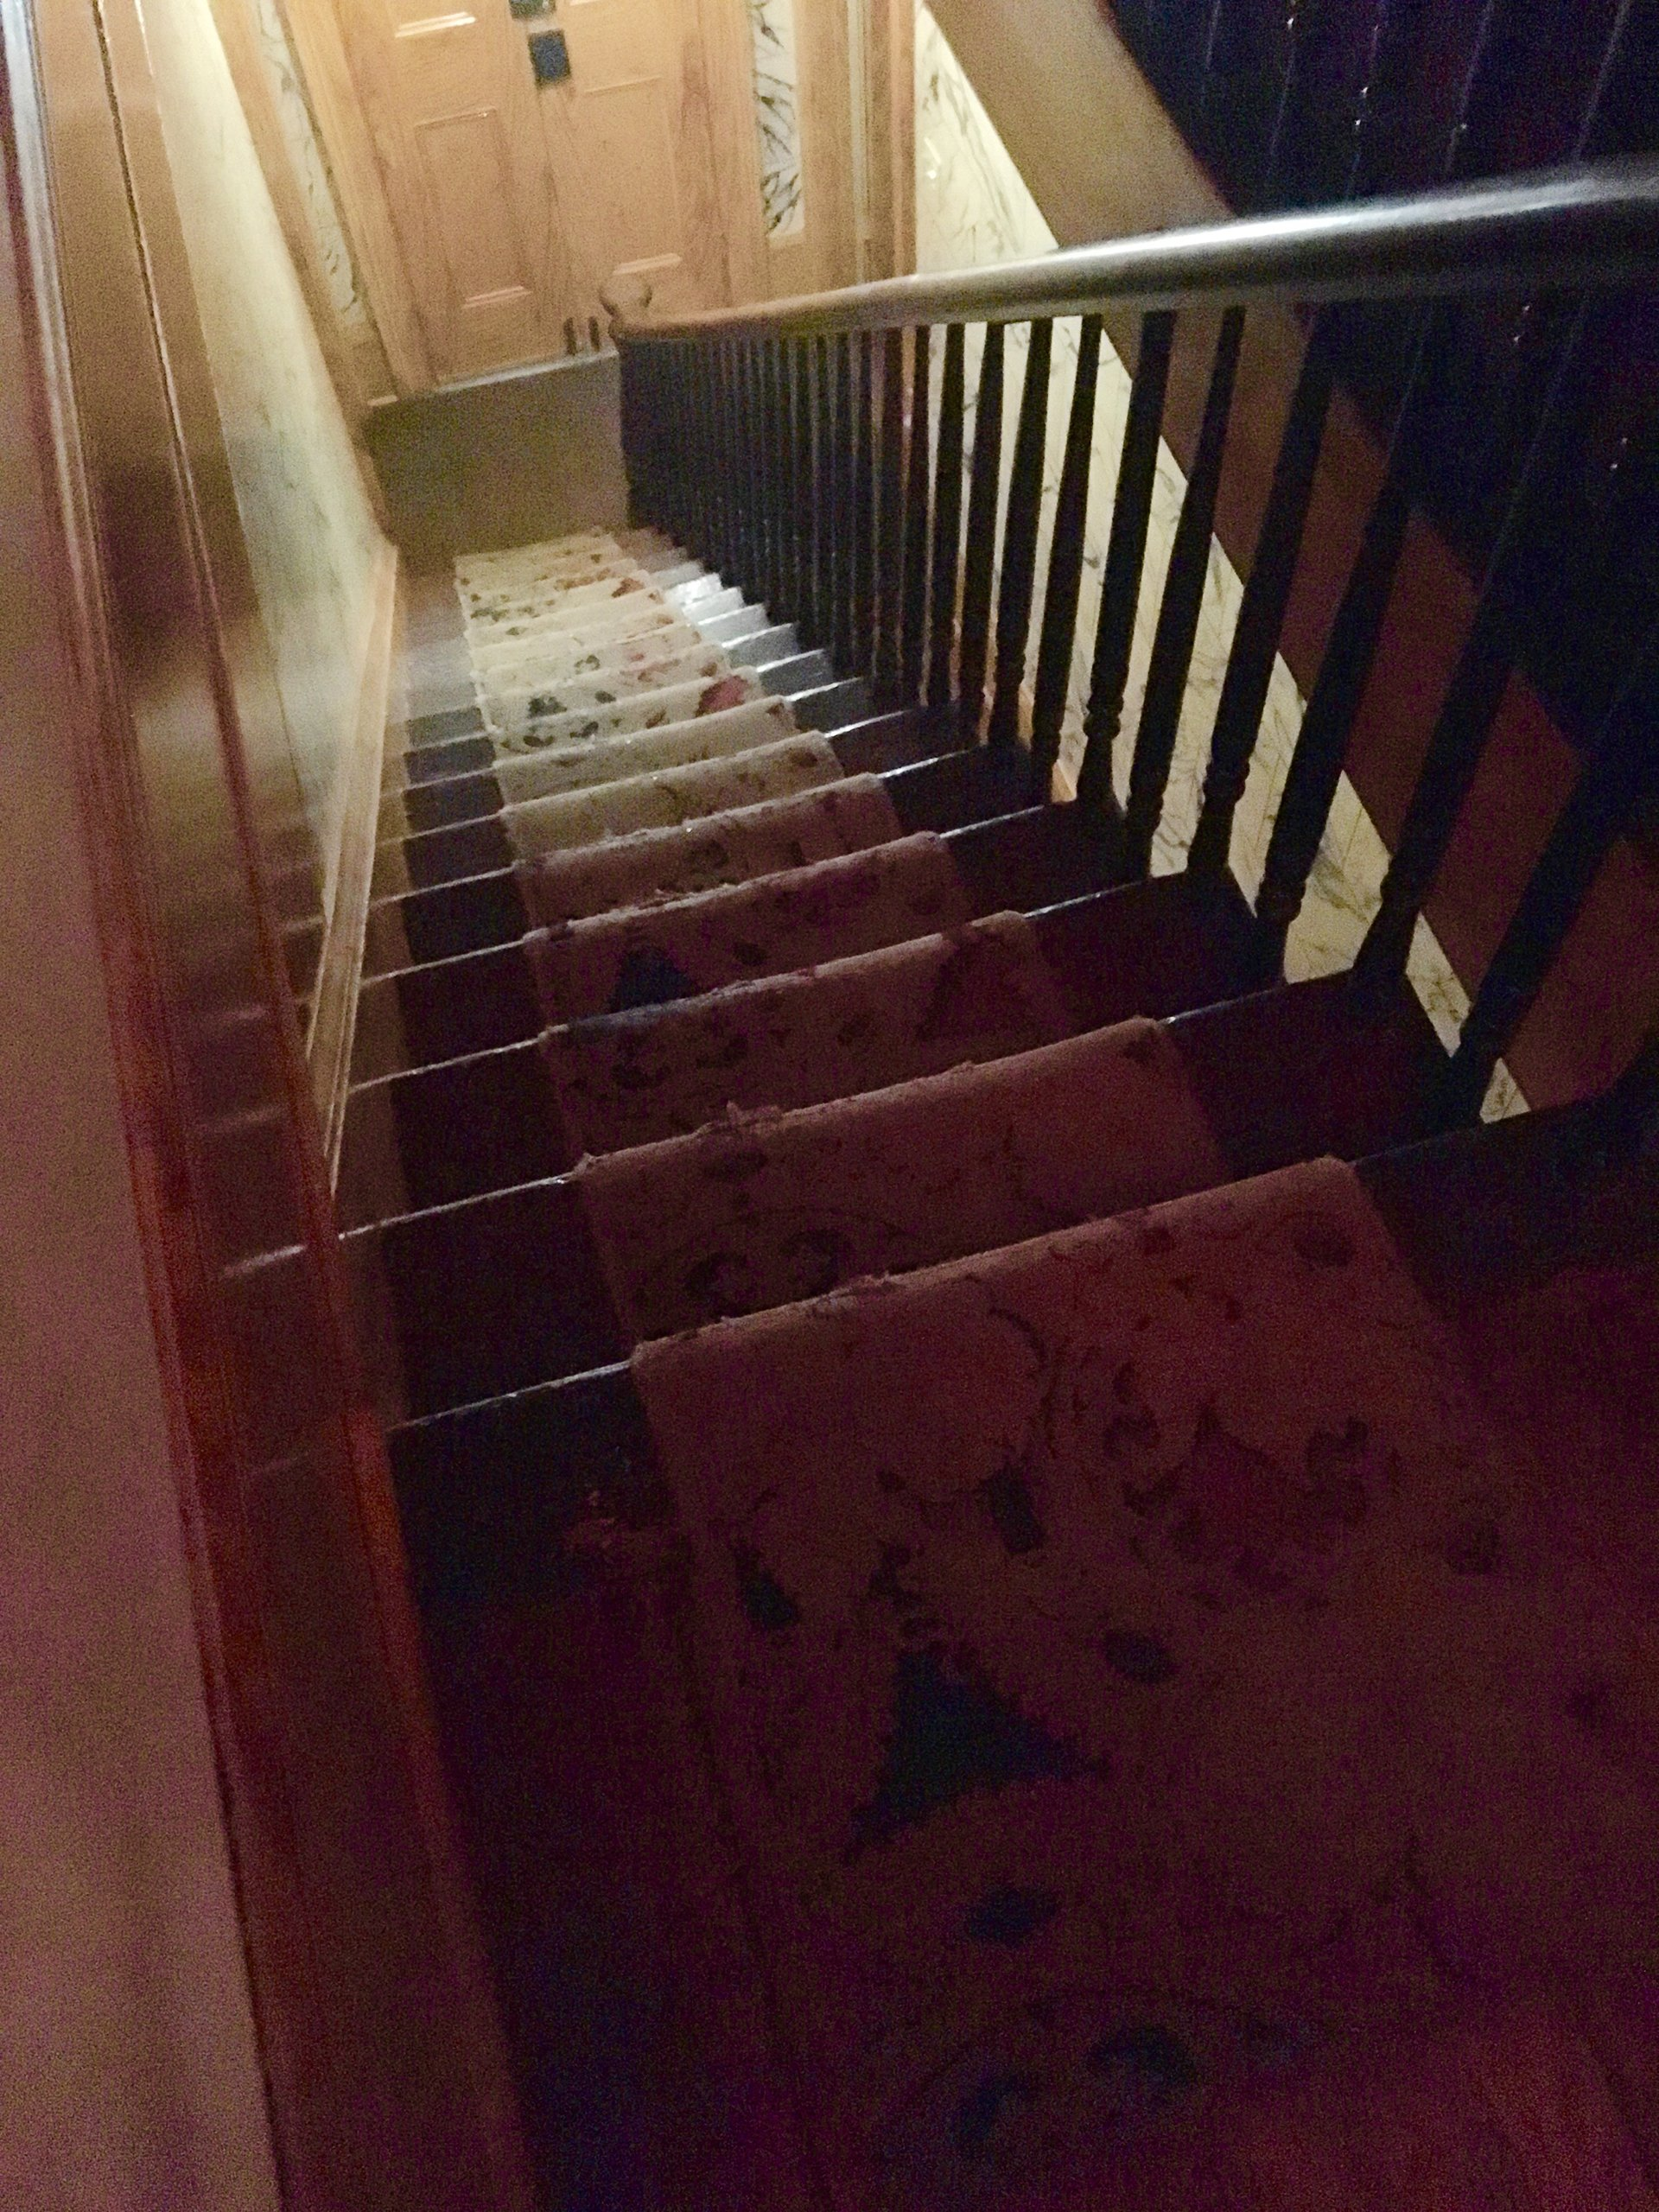 You could easily become a ghost at The Whaley House by trying to navigate this rickety staircase